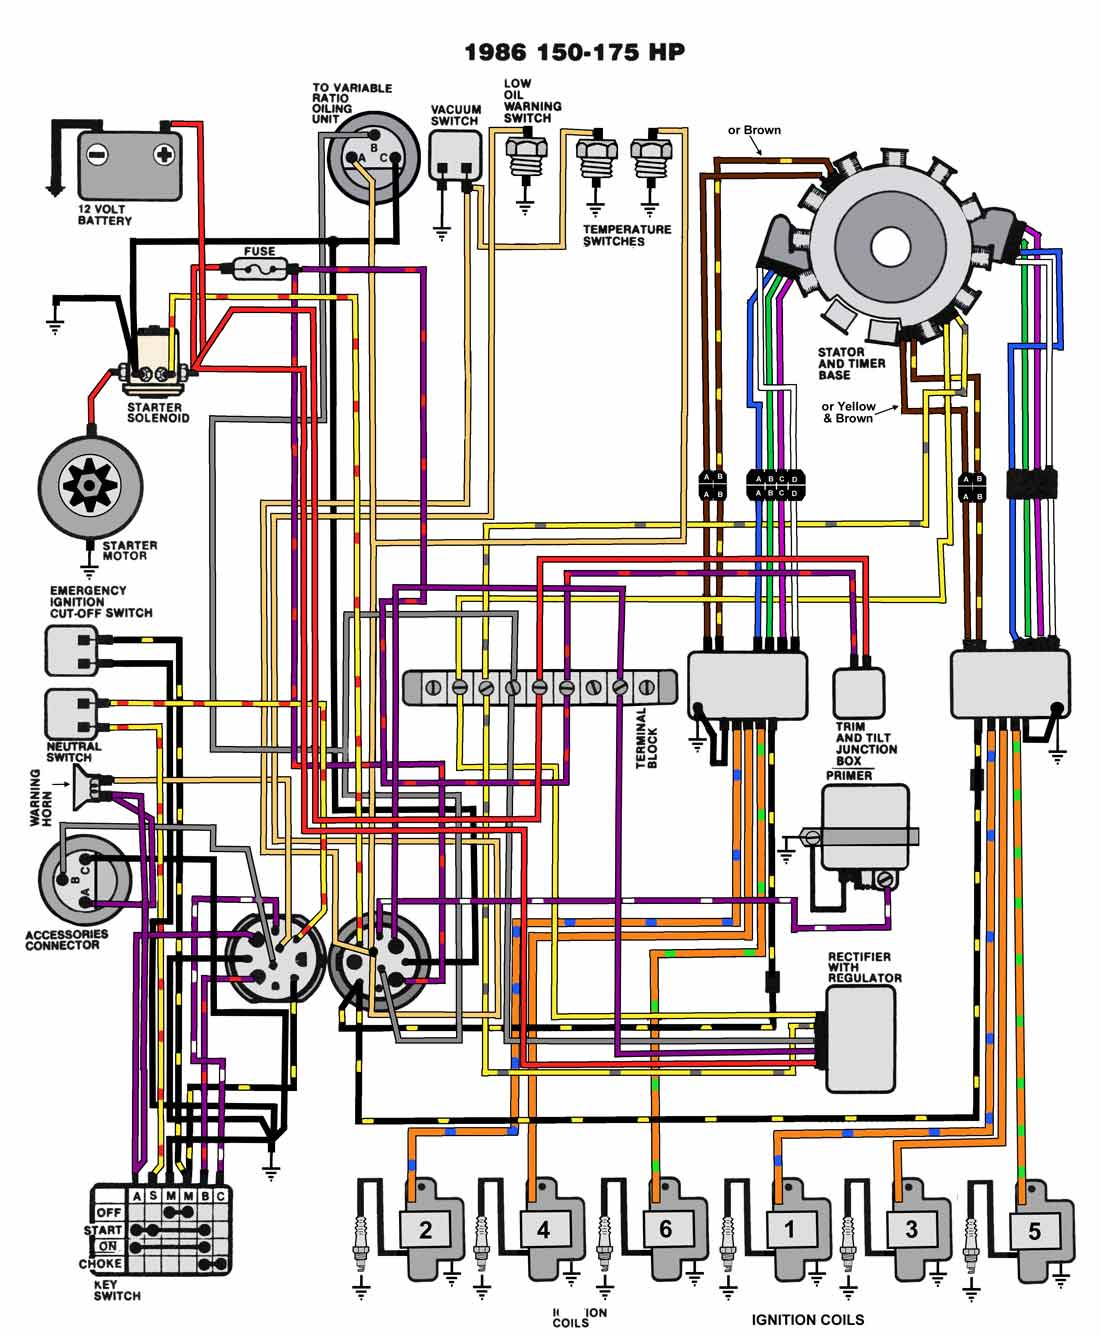 1986_150_175 maxrules wiring diagram wiring color standards \u2022 wiring diagrams yamaha key switch wiring diagram at gsmportal.co